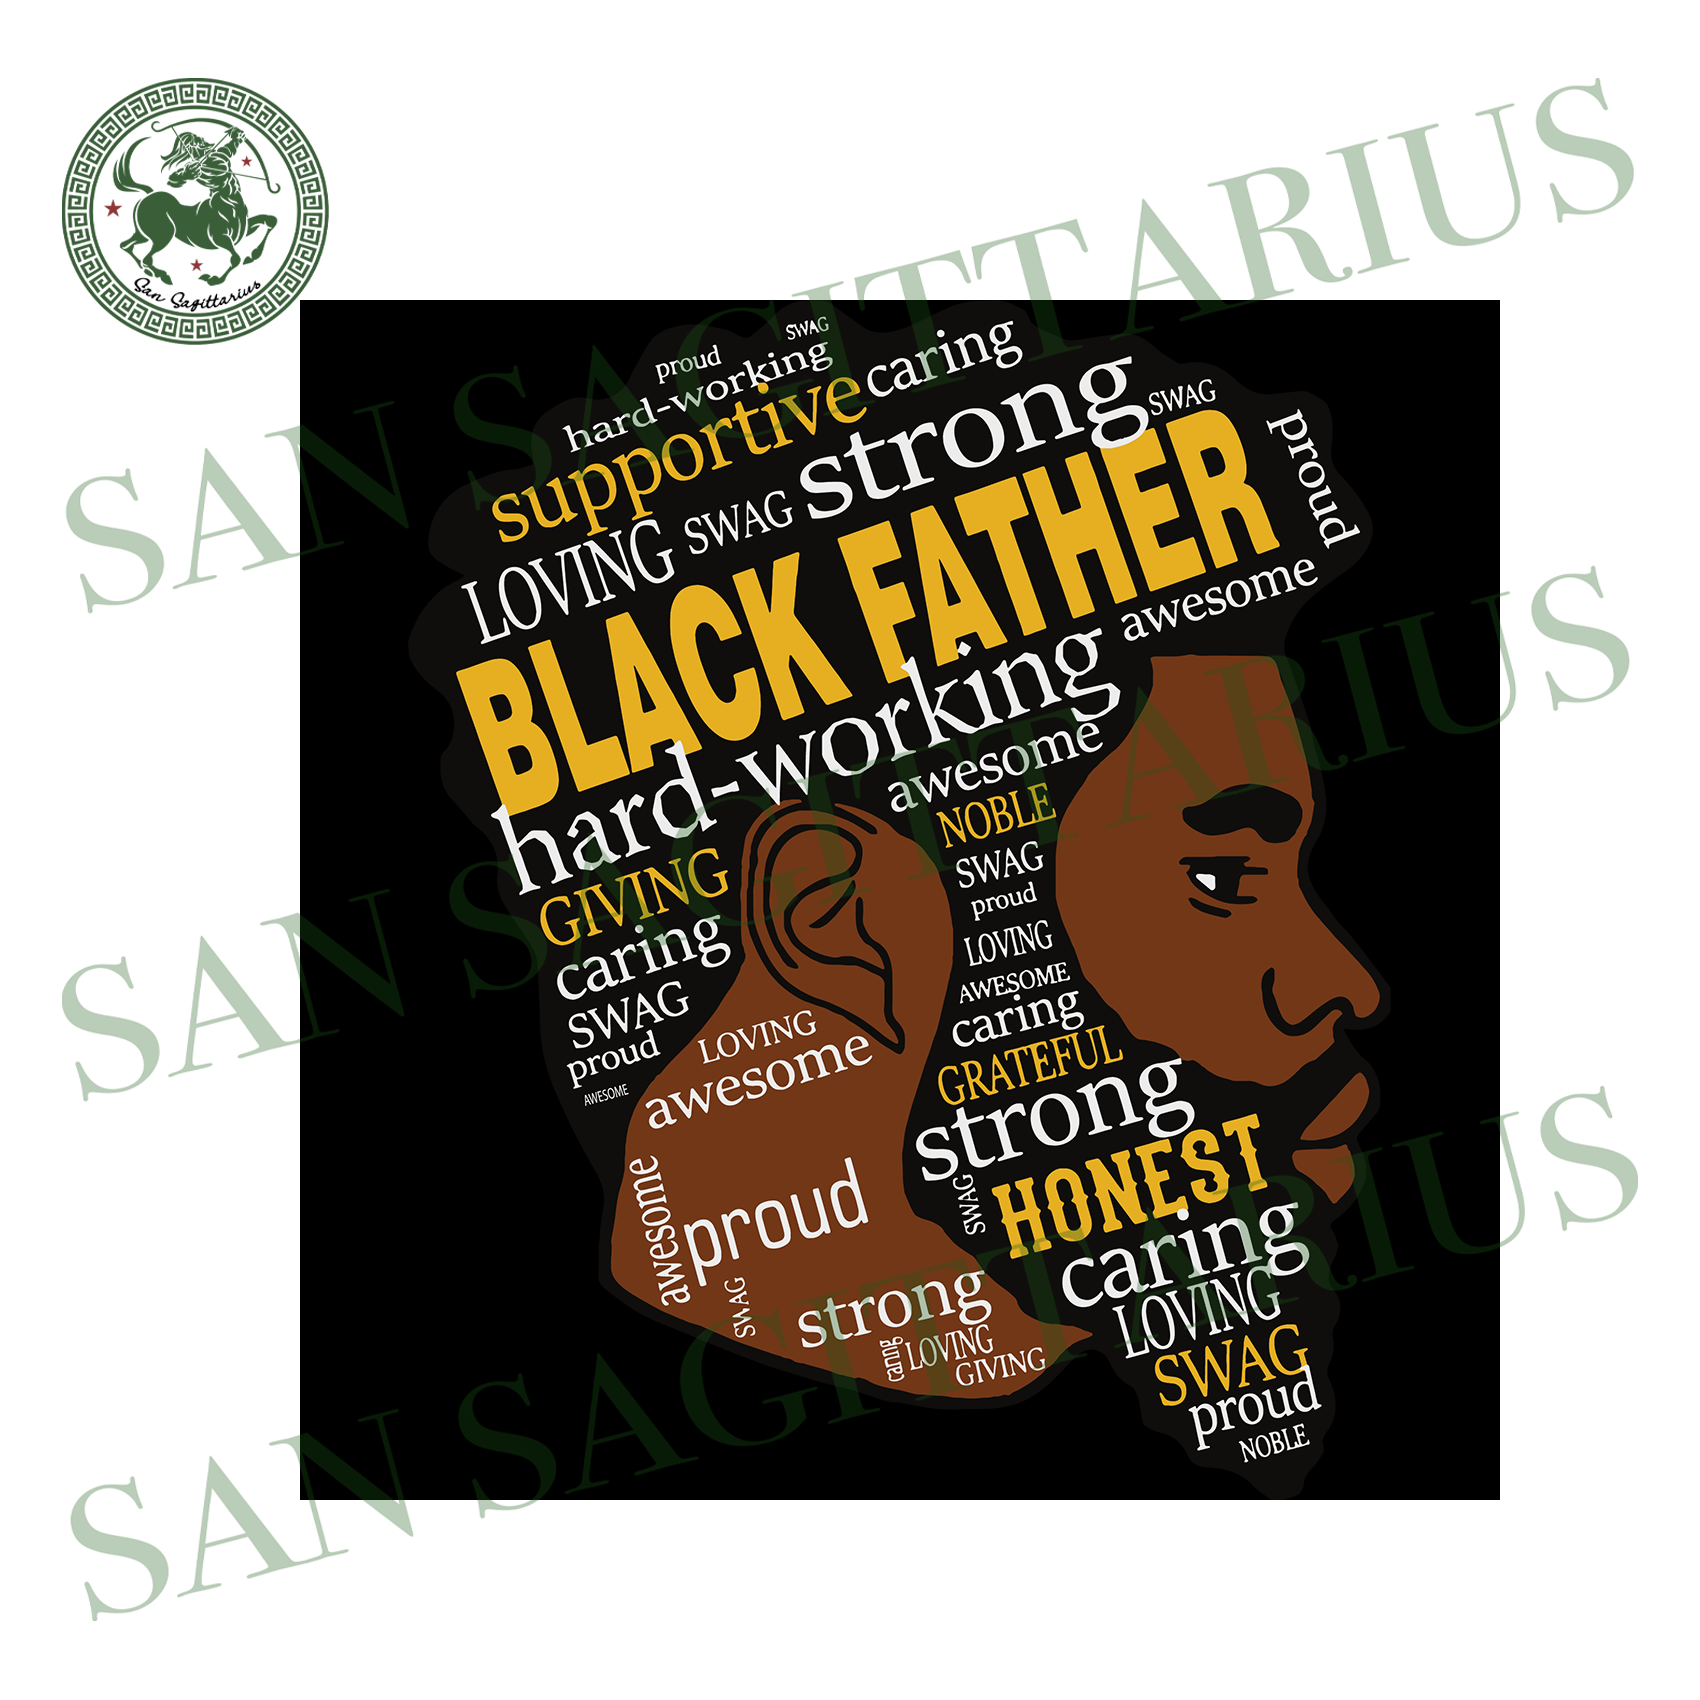 Free Browse our father day images, graphics, and designs from +79.322 free vectors graphics. Black Father Supportive Loving Swag Strong Hard Working Giving Father San Sagittarius SVG, PNG, EPS, DXF File